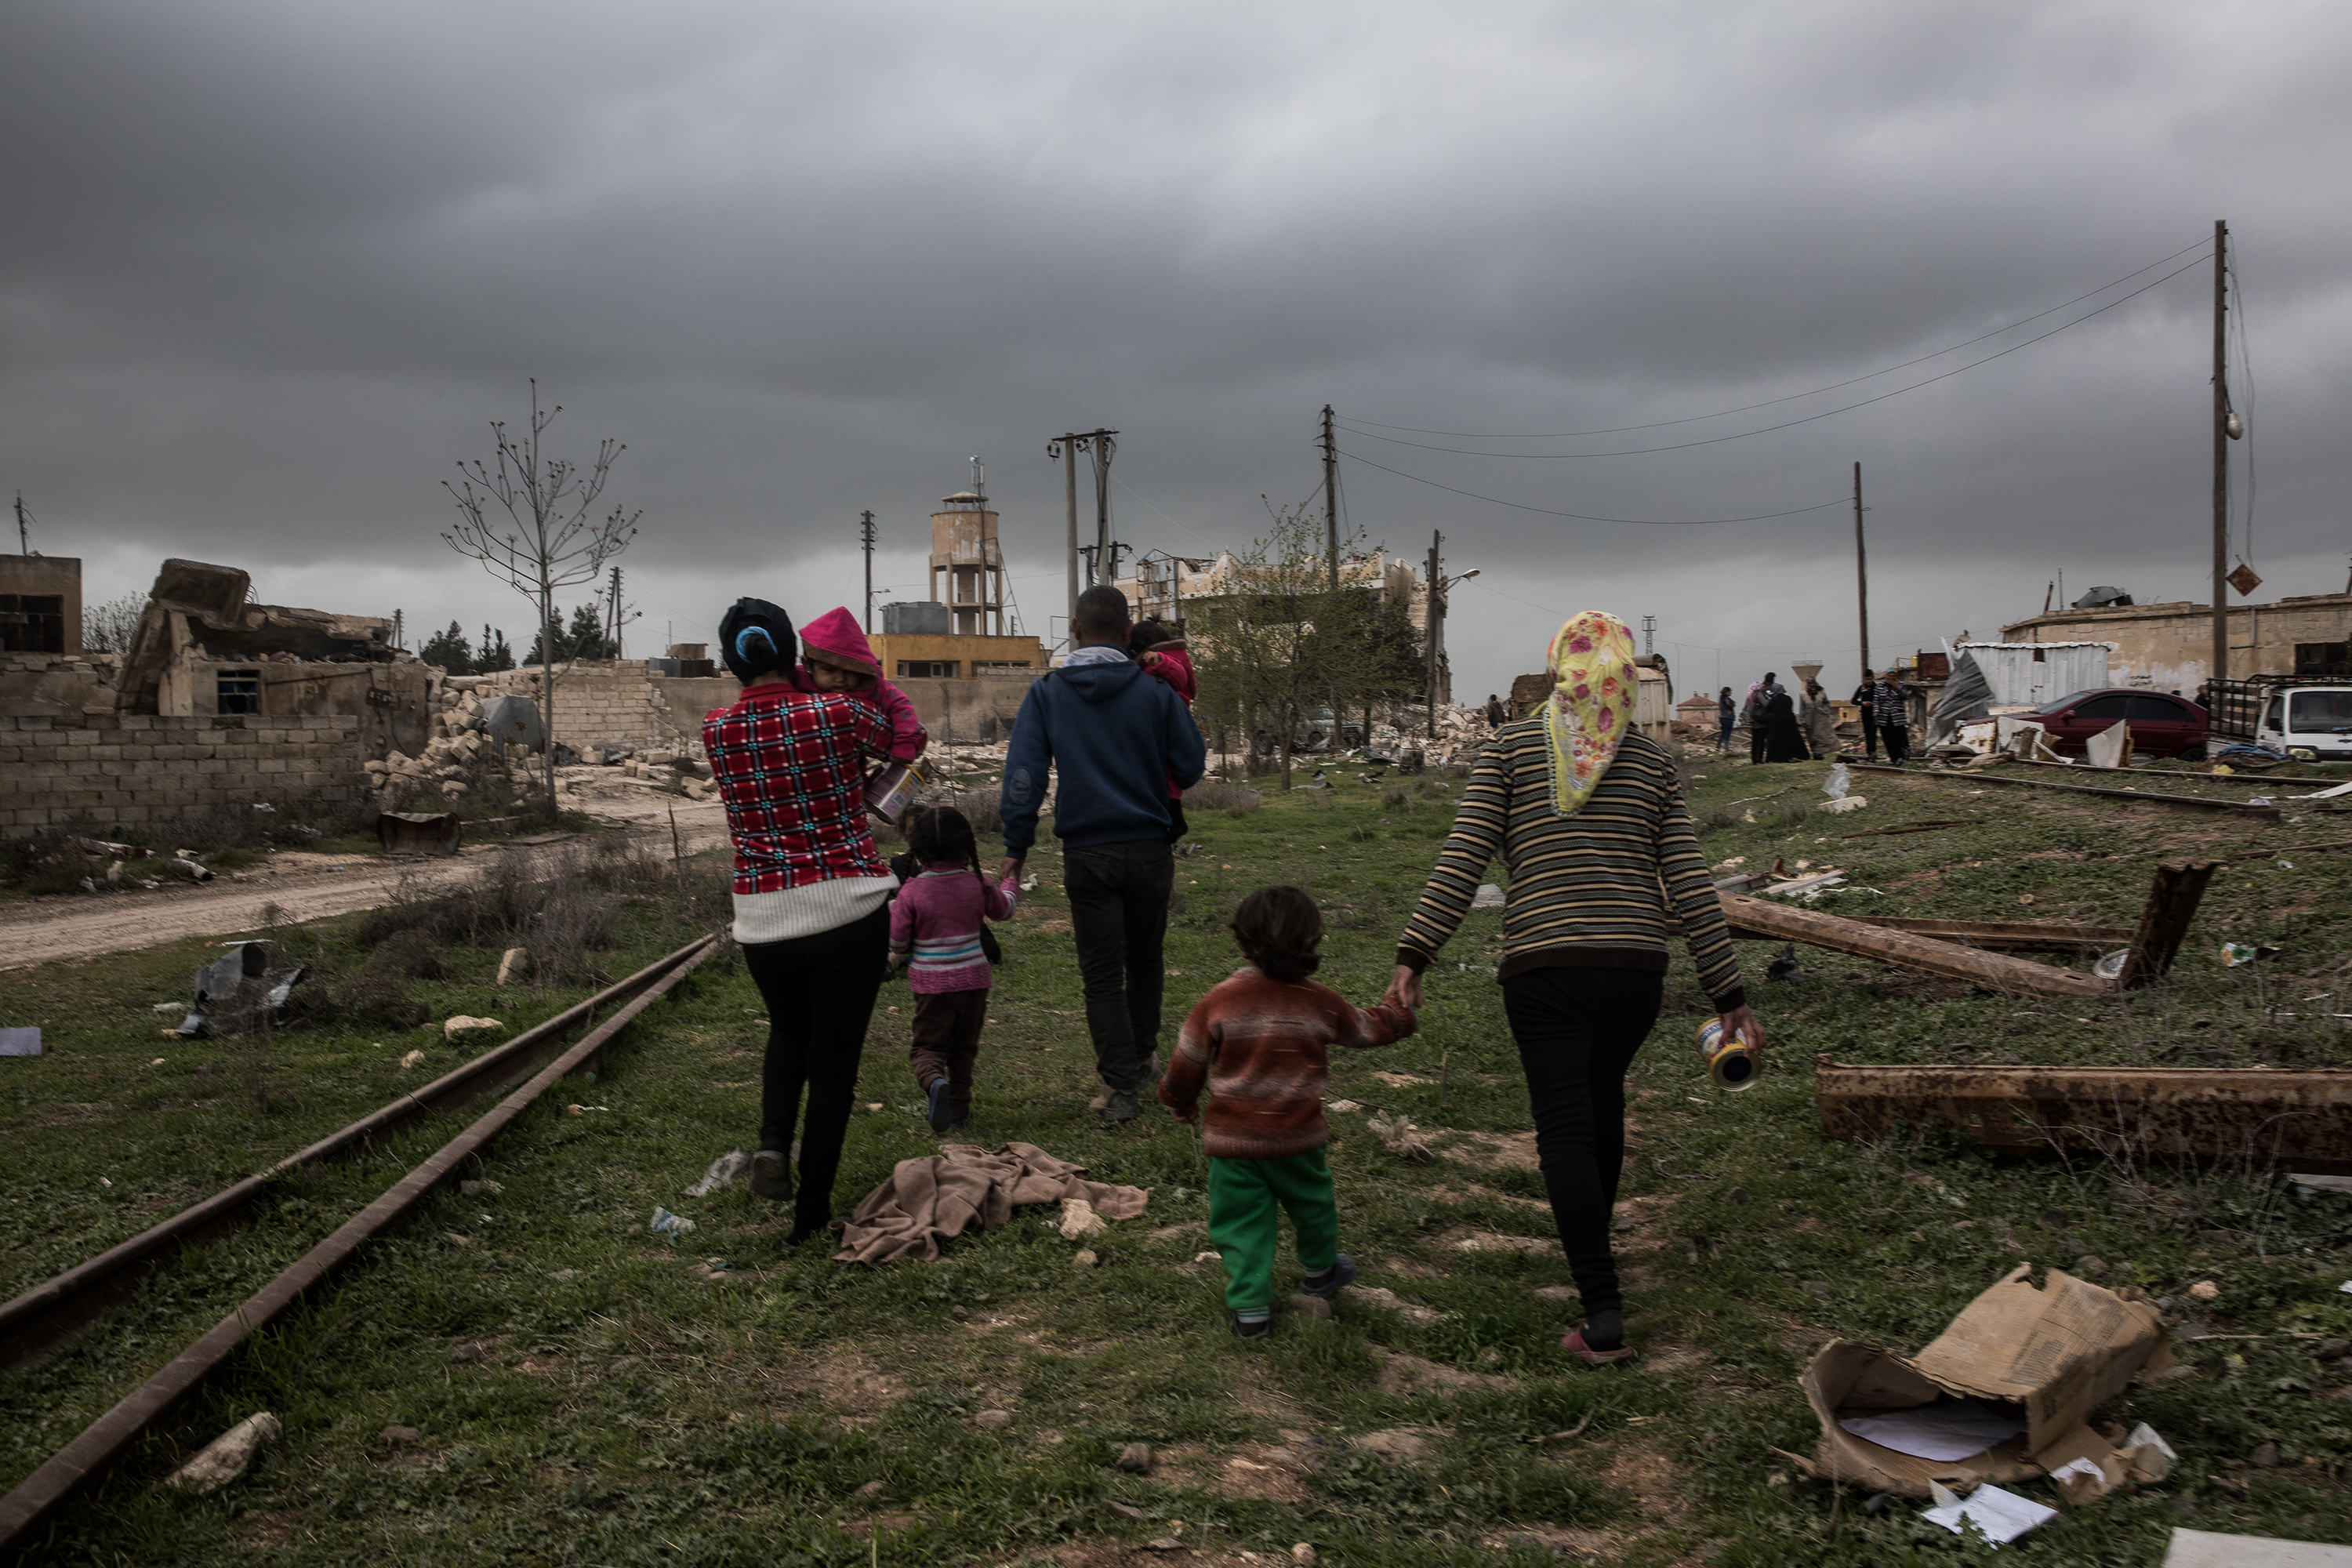 A family walks away from the camera through a destroyed town